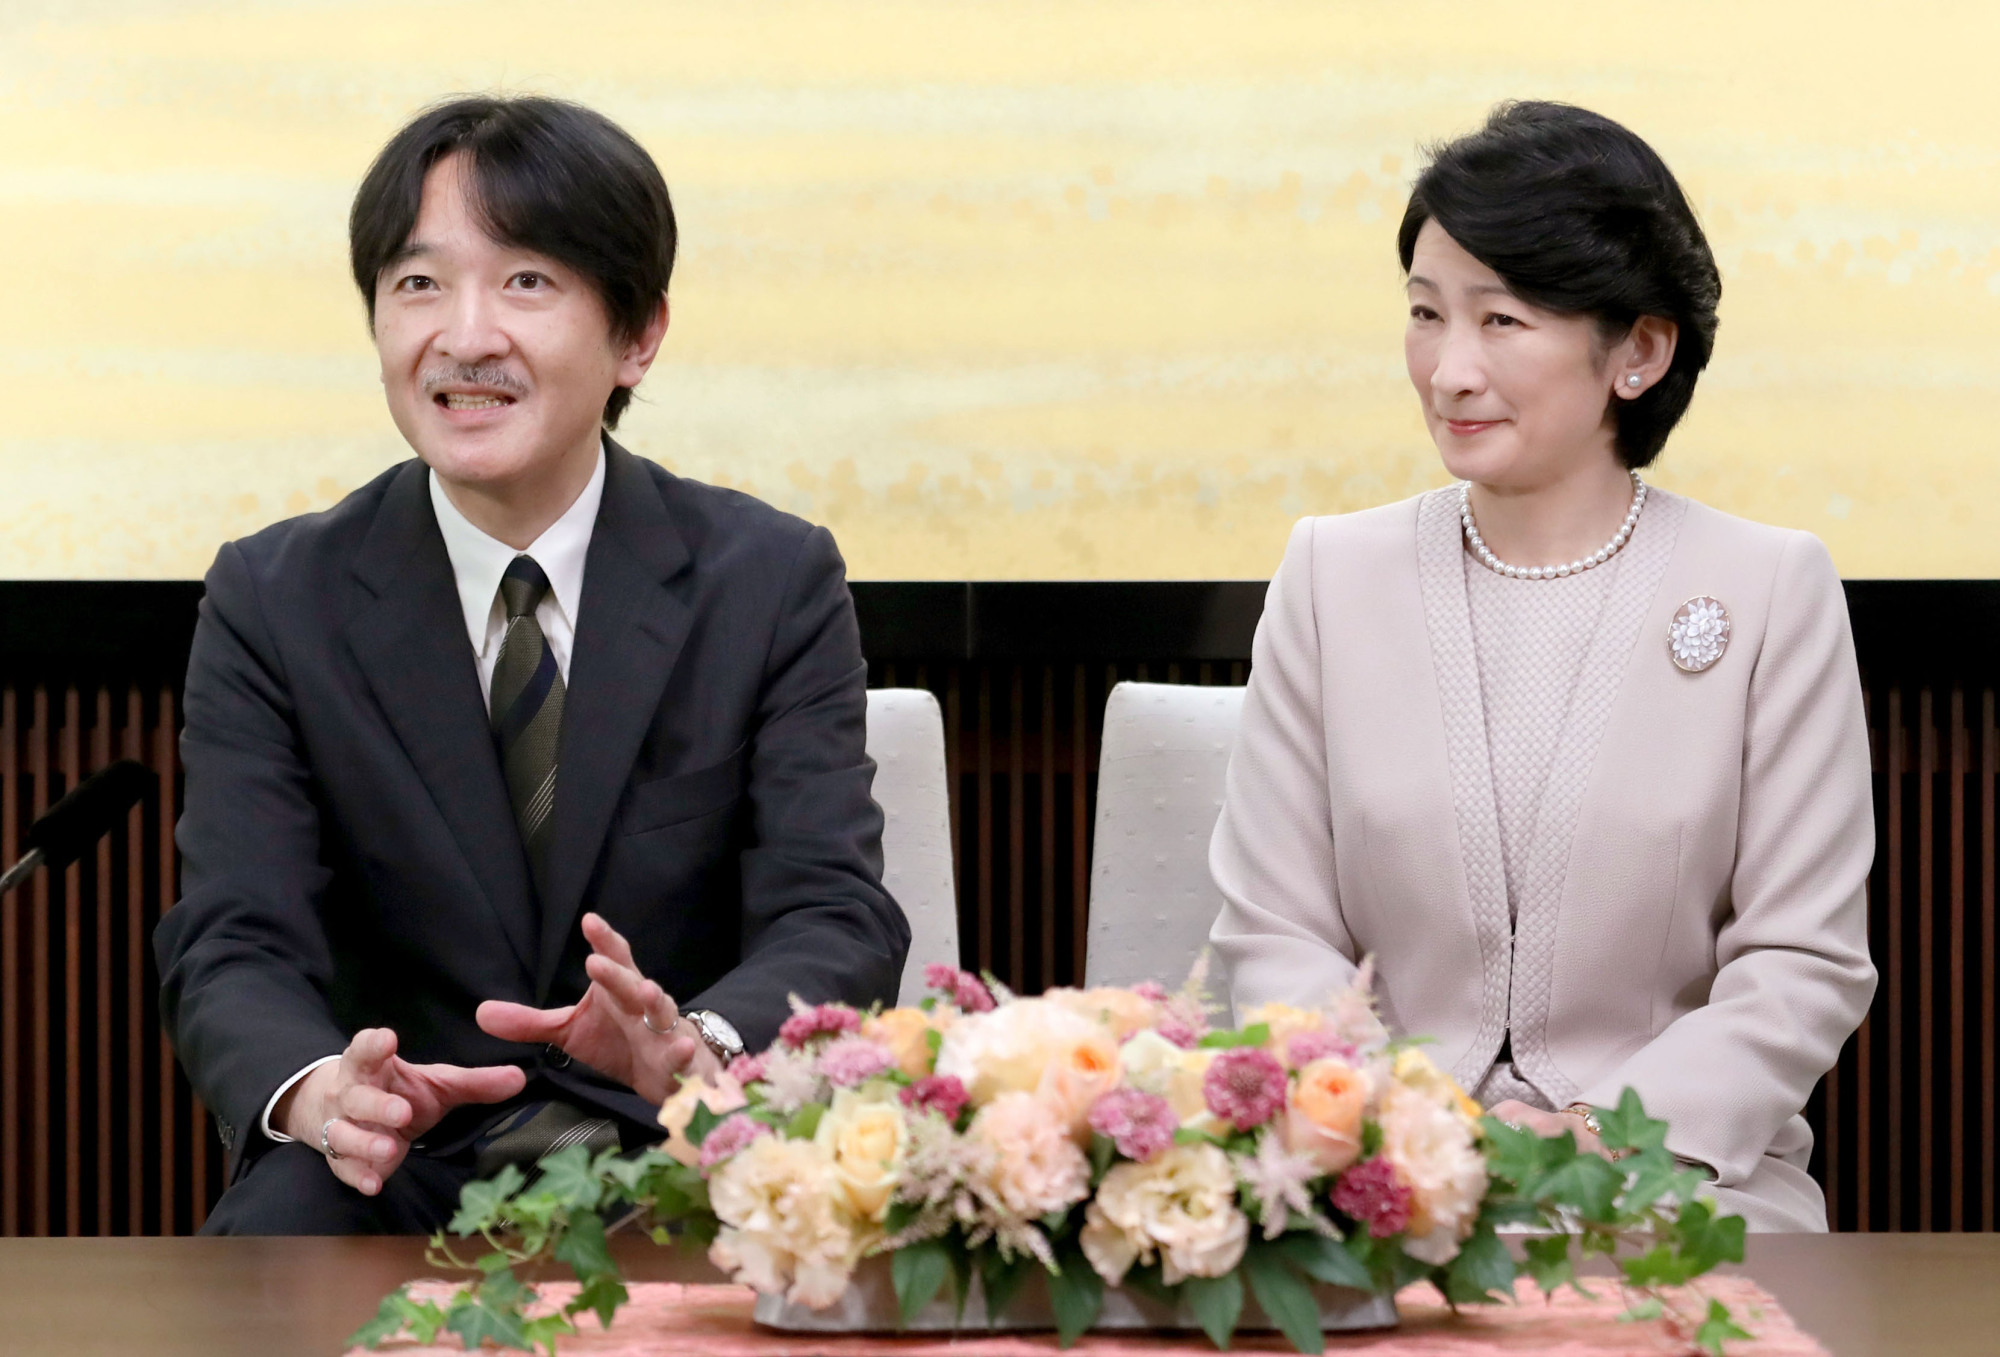 Prince Akishino, the younger son of Emperor Akihito, speaks along with his wife, Princess Kiko, at a news conference held at his home in Tokyo on Nov. 22. The prince turned 51 Tuesday. POOL/ VIA KYODO